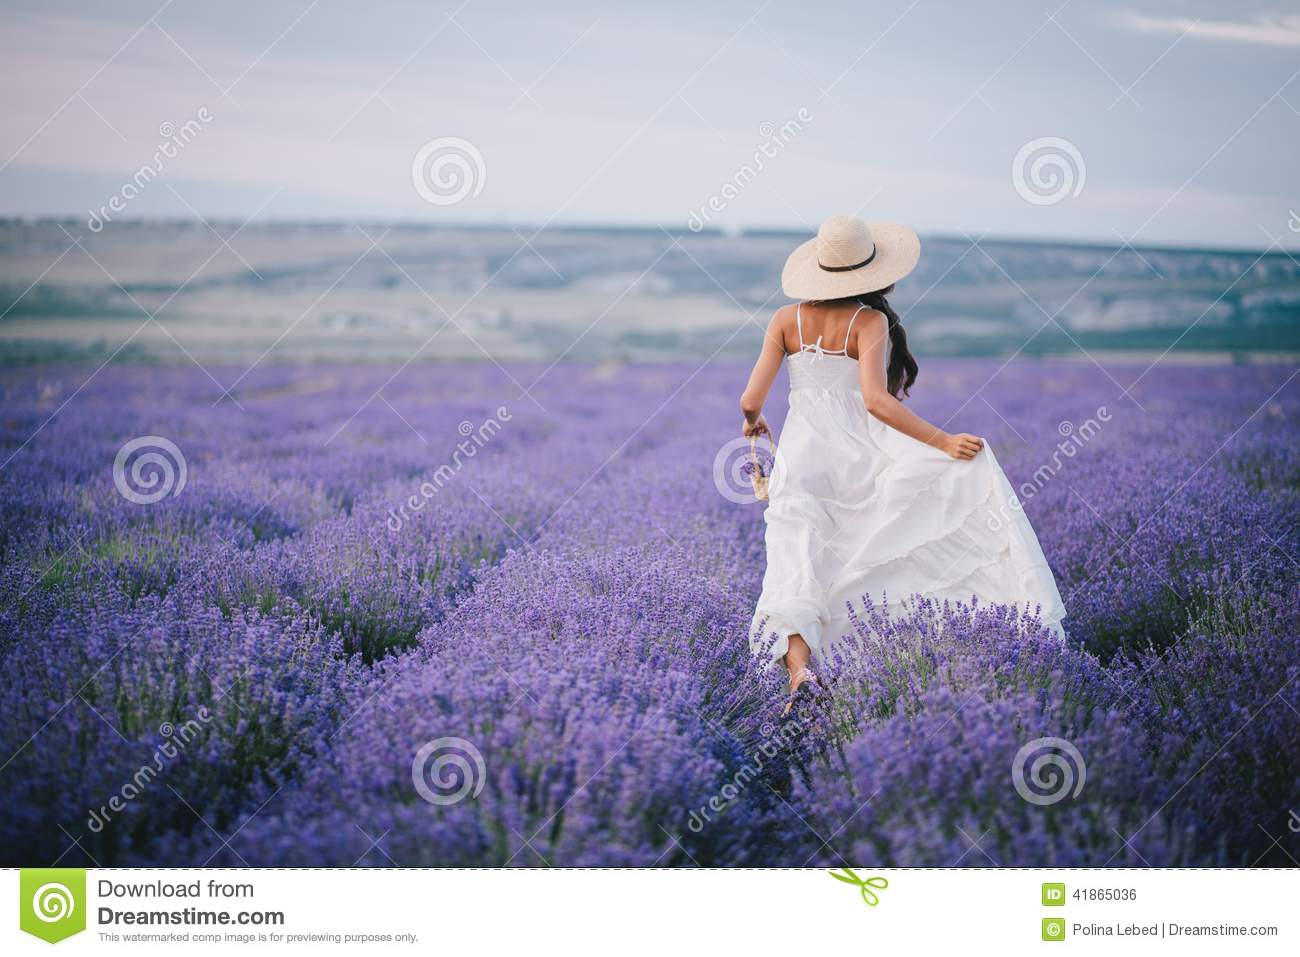 Girl Running On Beach Wallpaper Beautiful Young Woman Running In A Lavender Field Stock